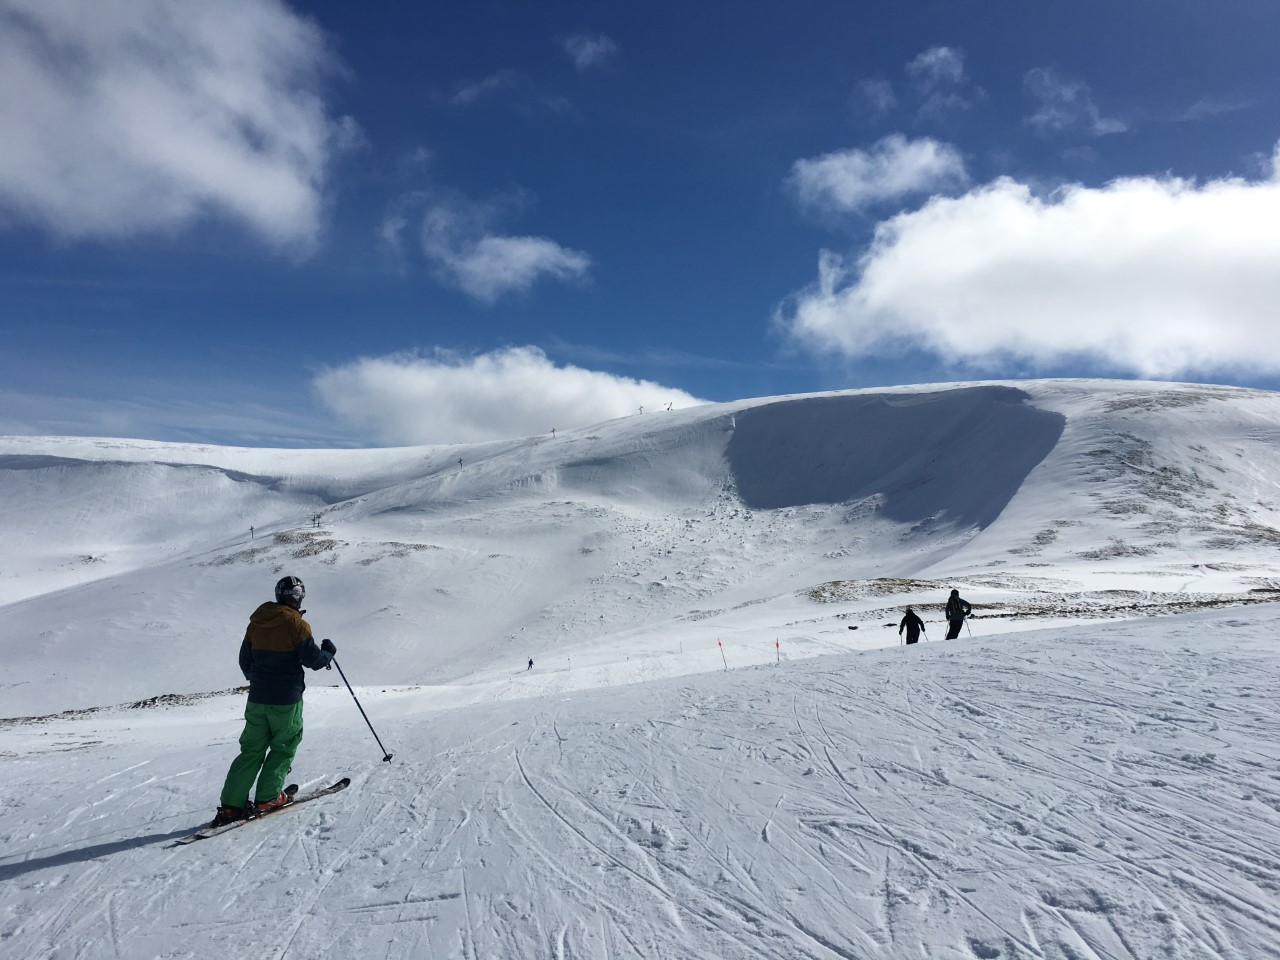 Skiing into the Coire Fionn Gully, shadowed by Glas Maol at Glenshee